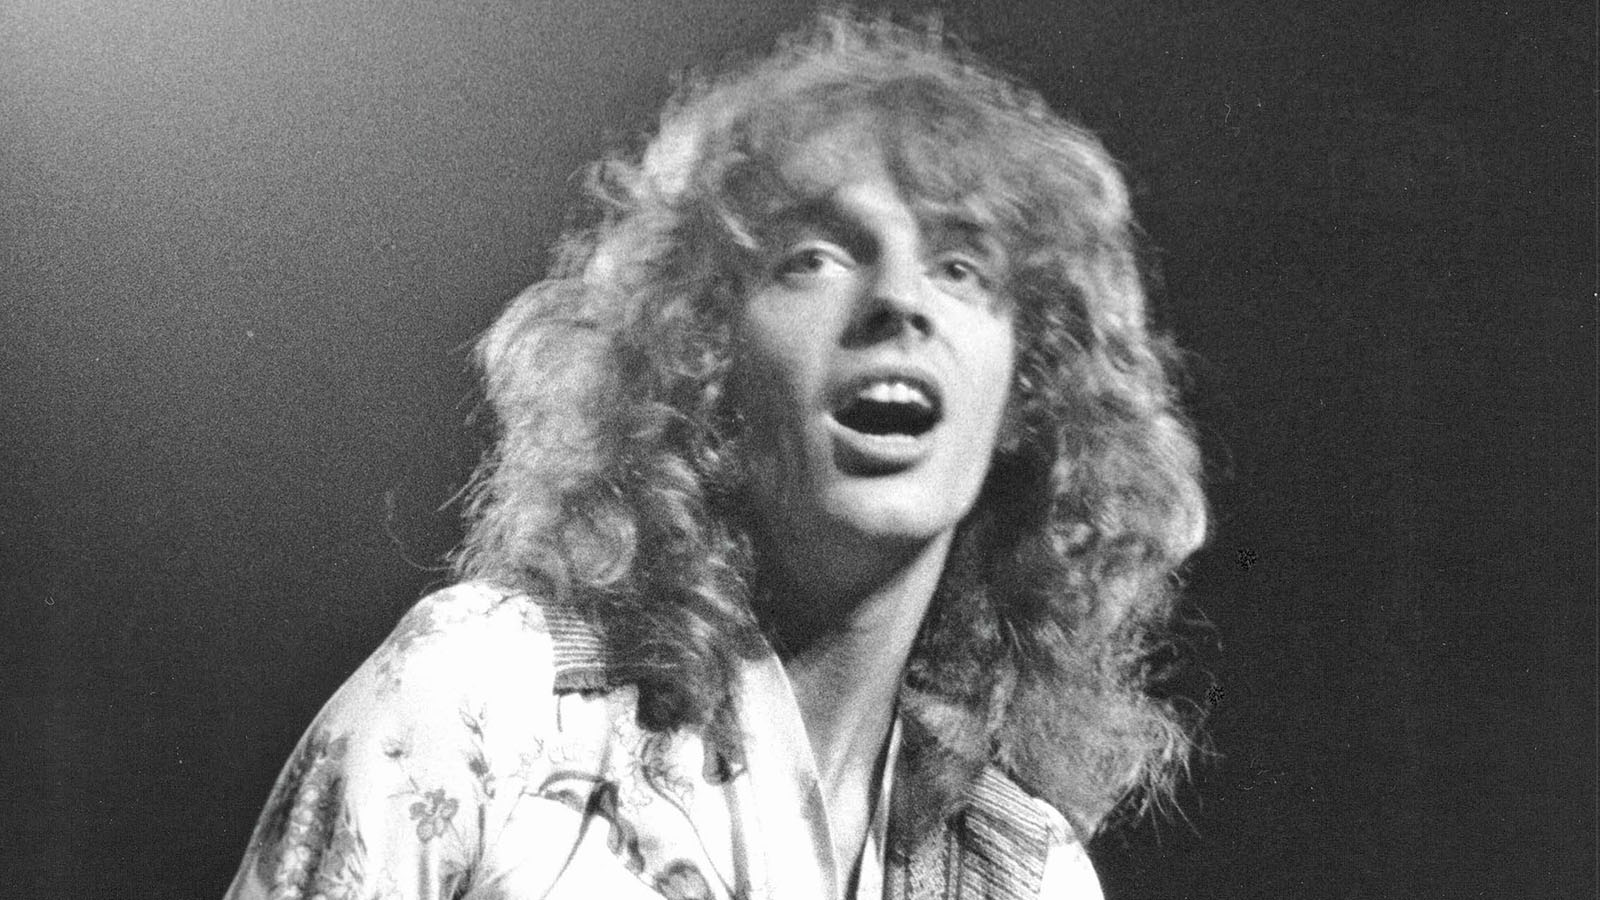 Peter Frampton Tells All: Life-Changing Diagnosis, New Album, Harrison, Bowie and Humble Pie | Guitarworld